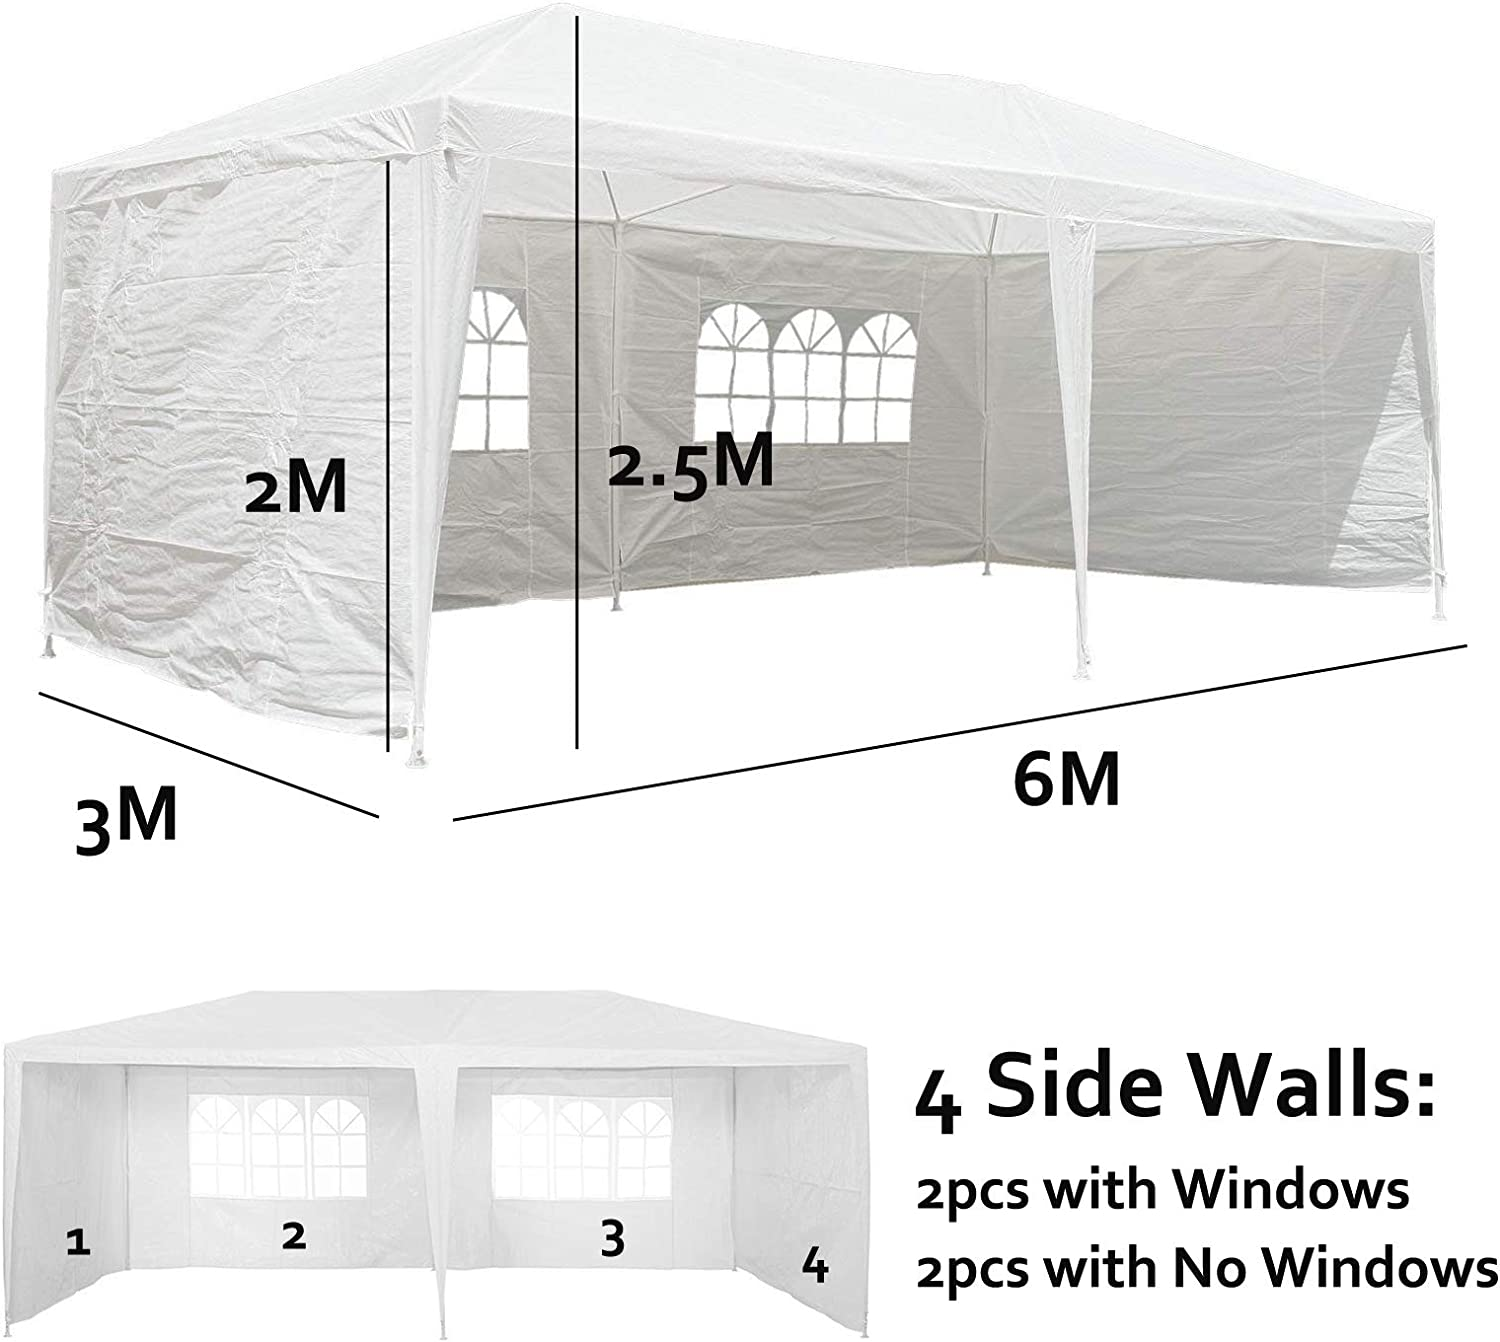 dicn 3x3m Gazebo Green Party Tent PE Cover Waterproof with 4 Side Walls Steel Tubes Awning Marquee Canopy Shelter for Outdoor Wedding Camping Events